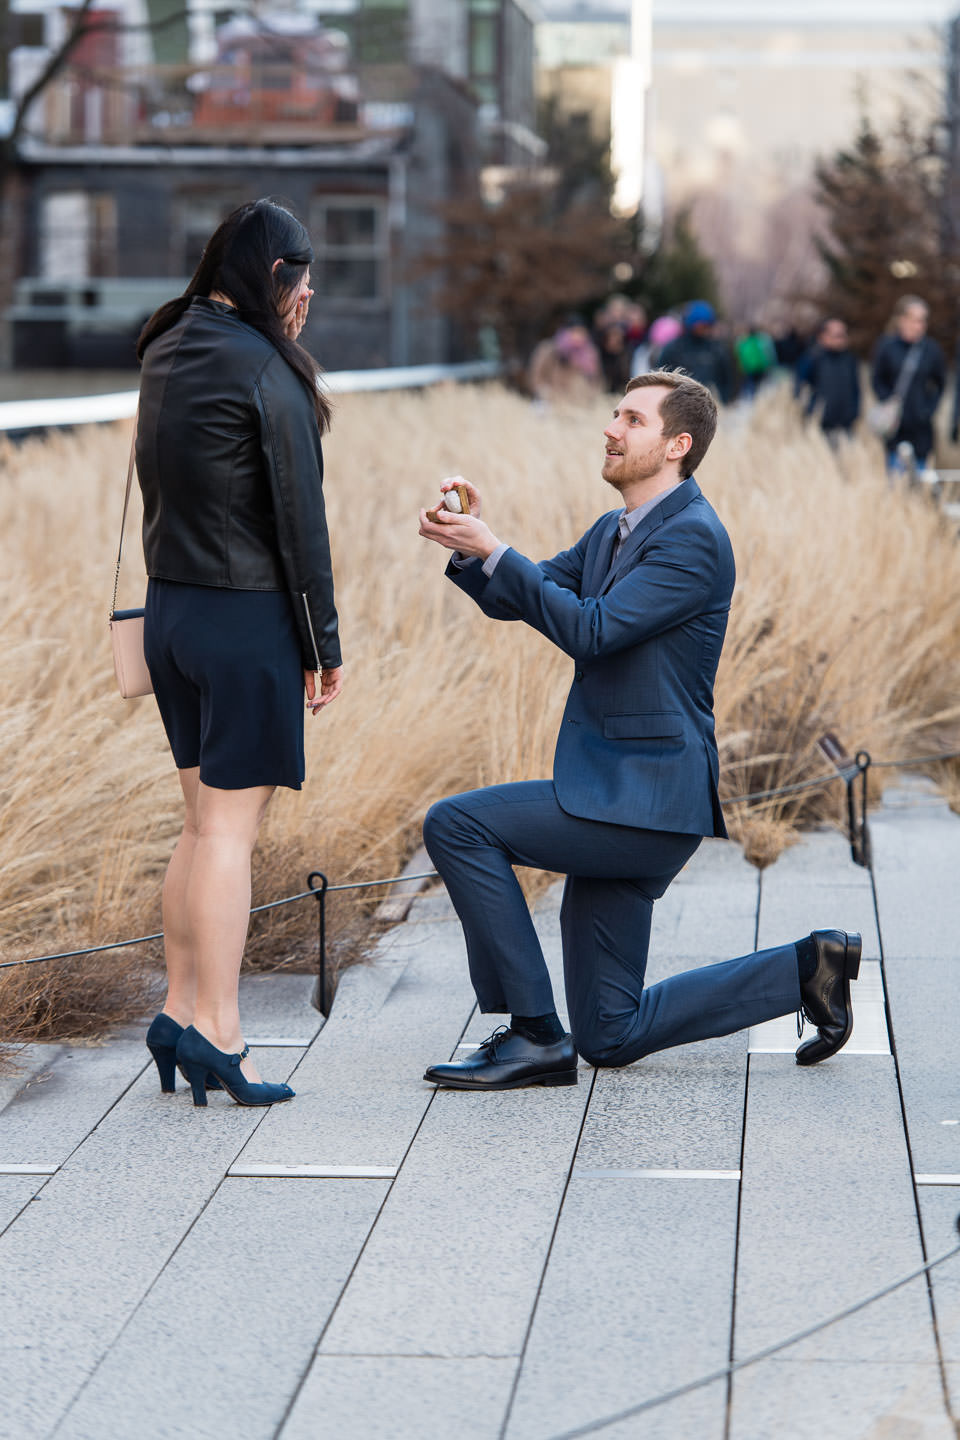 guy proposing on one knee in highline park in new york city